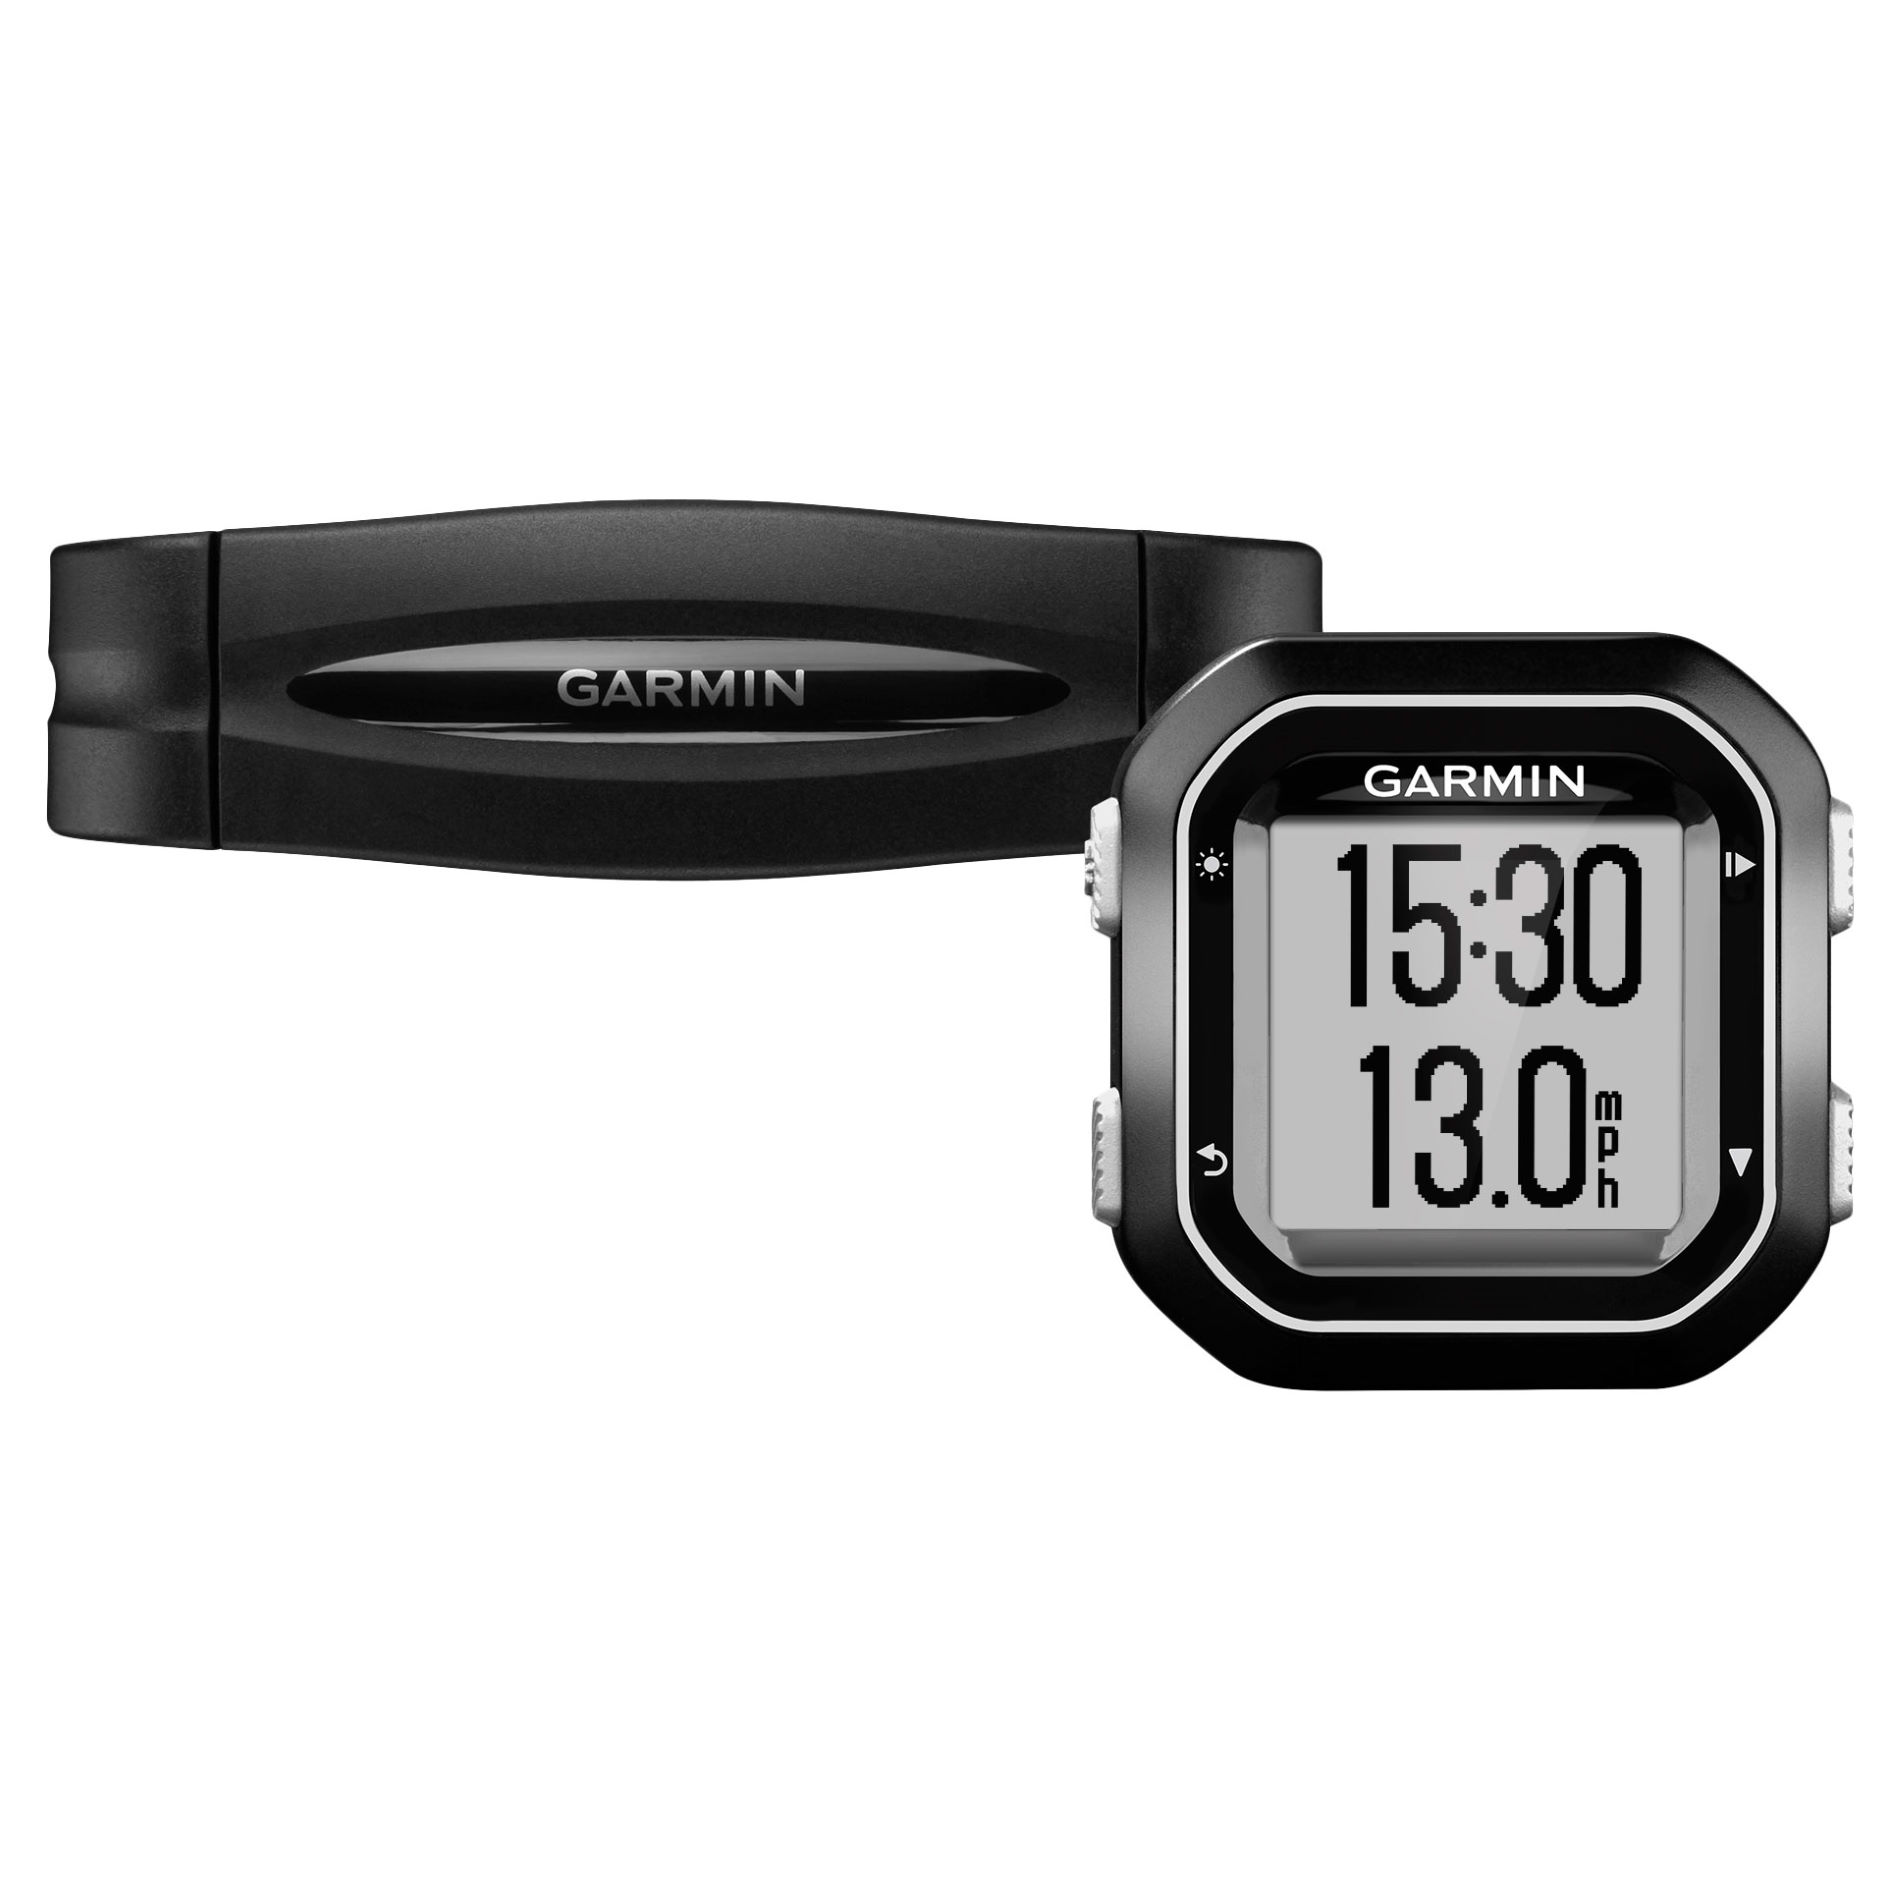 garmin edge 25 gps fahrradcomputer mit herzfrequenzmesser. Black Bedroom Furniture Sets. Home Design Ideas